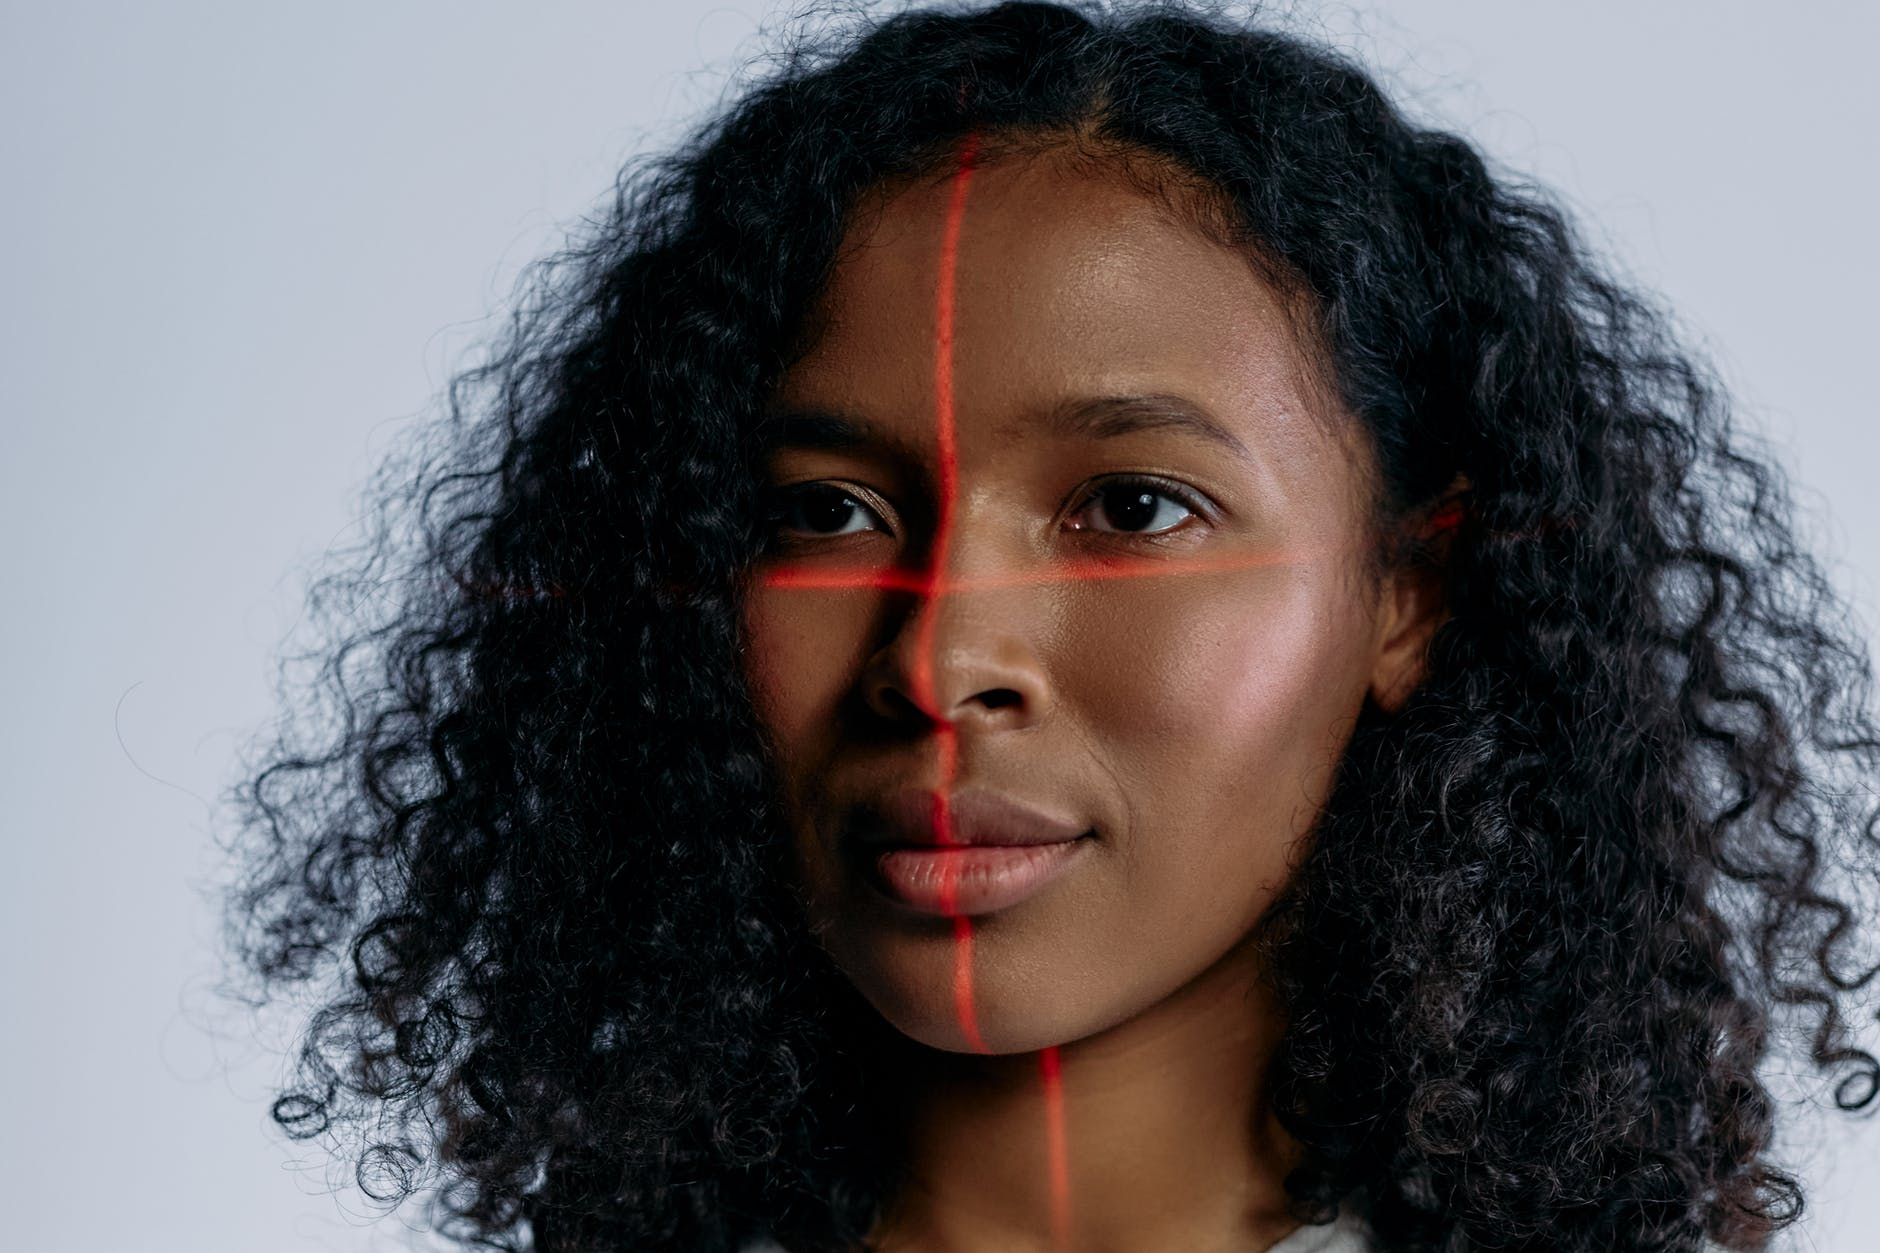 Australia's two largest states trial facial recognition software to police pandemic rules